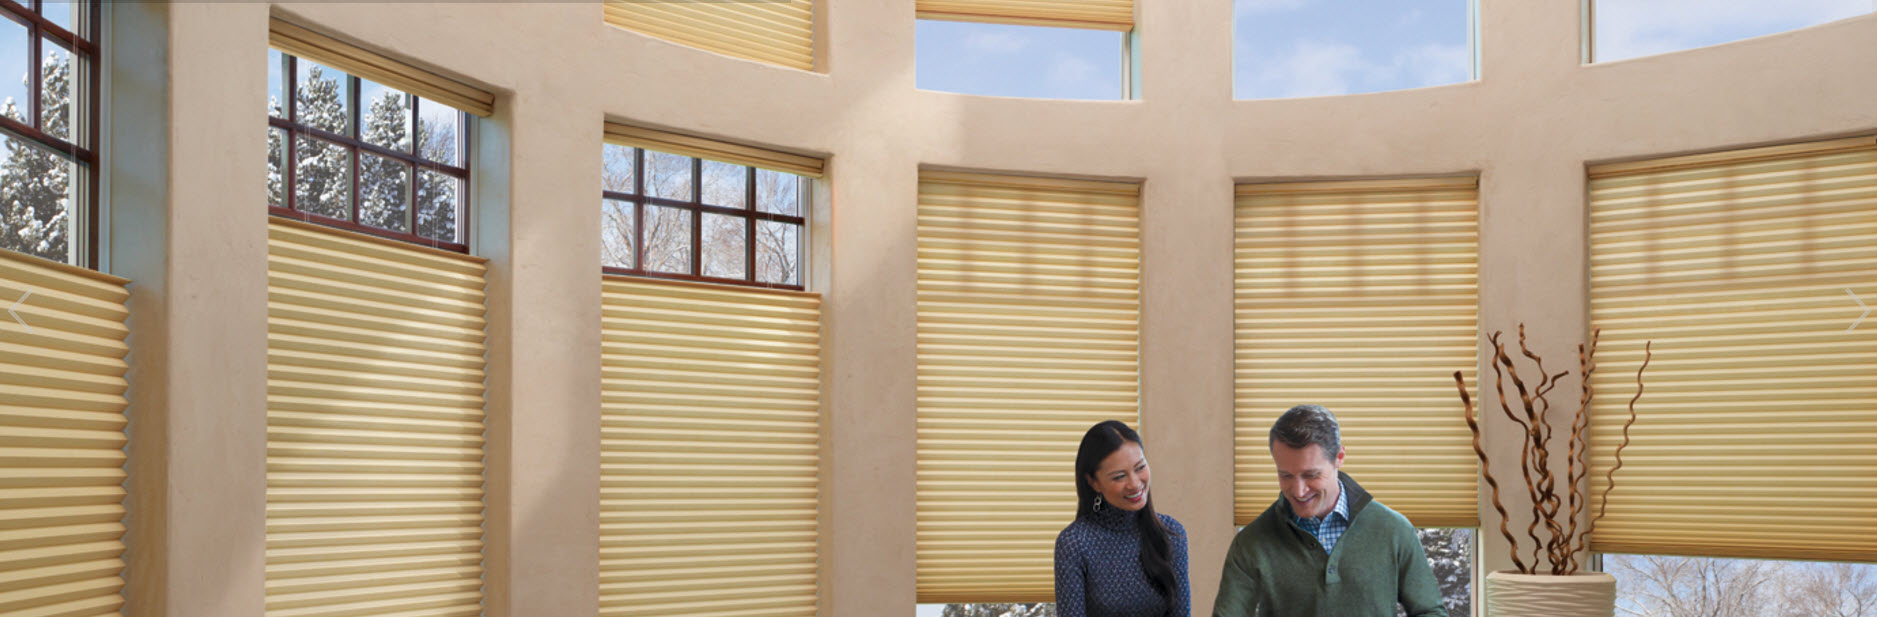 modernize your sliding pin glass california with door blinds shutters plantation